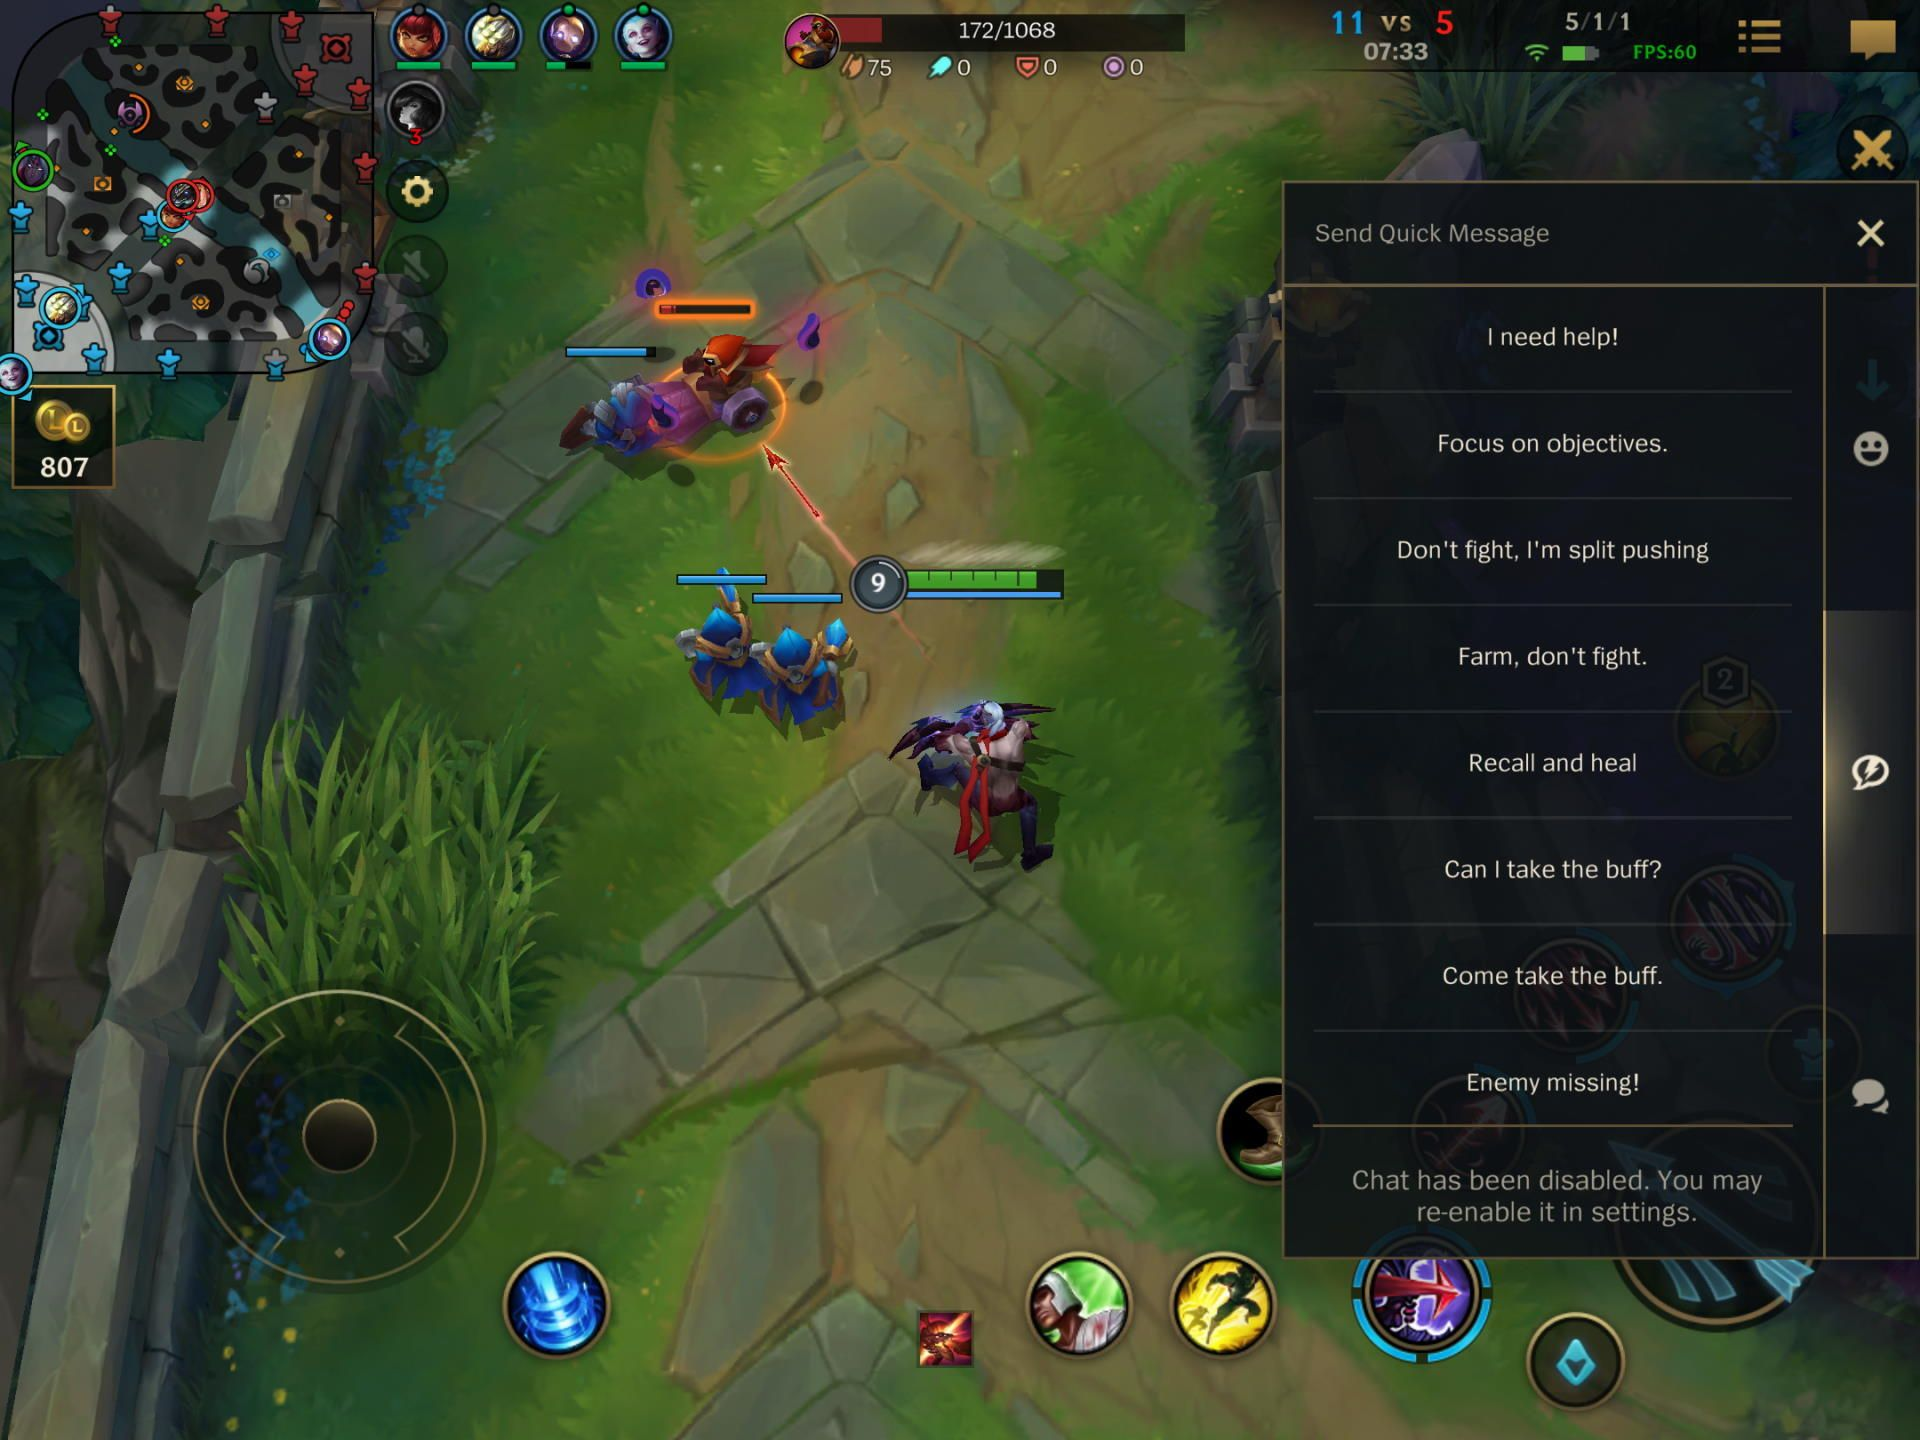 Quick Messages in League of Legends Wild Rift